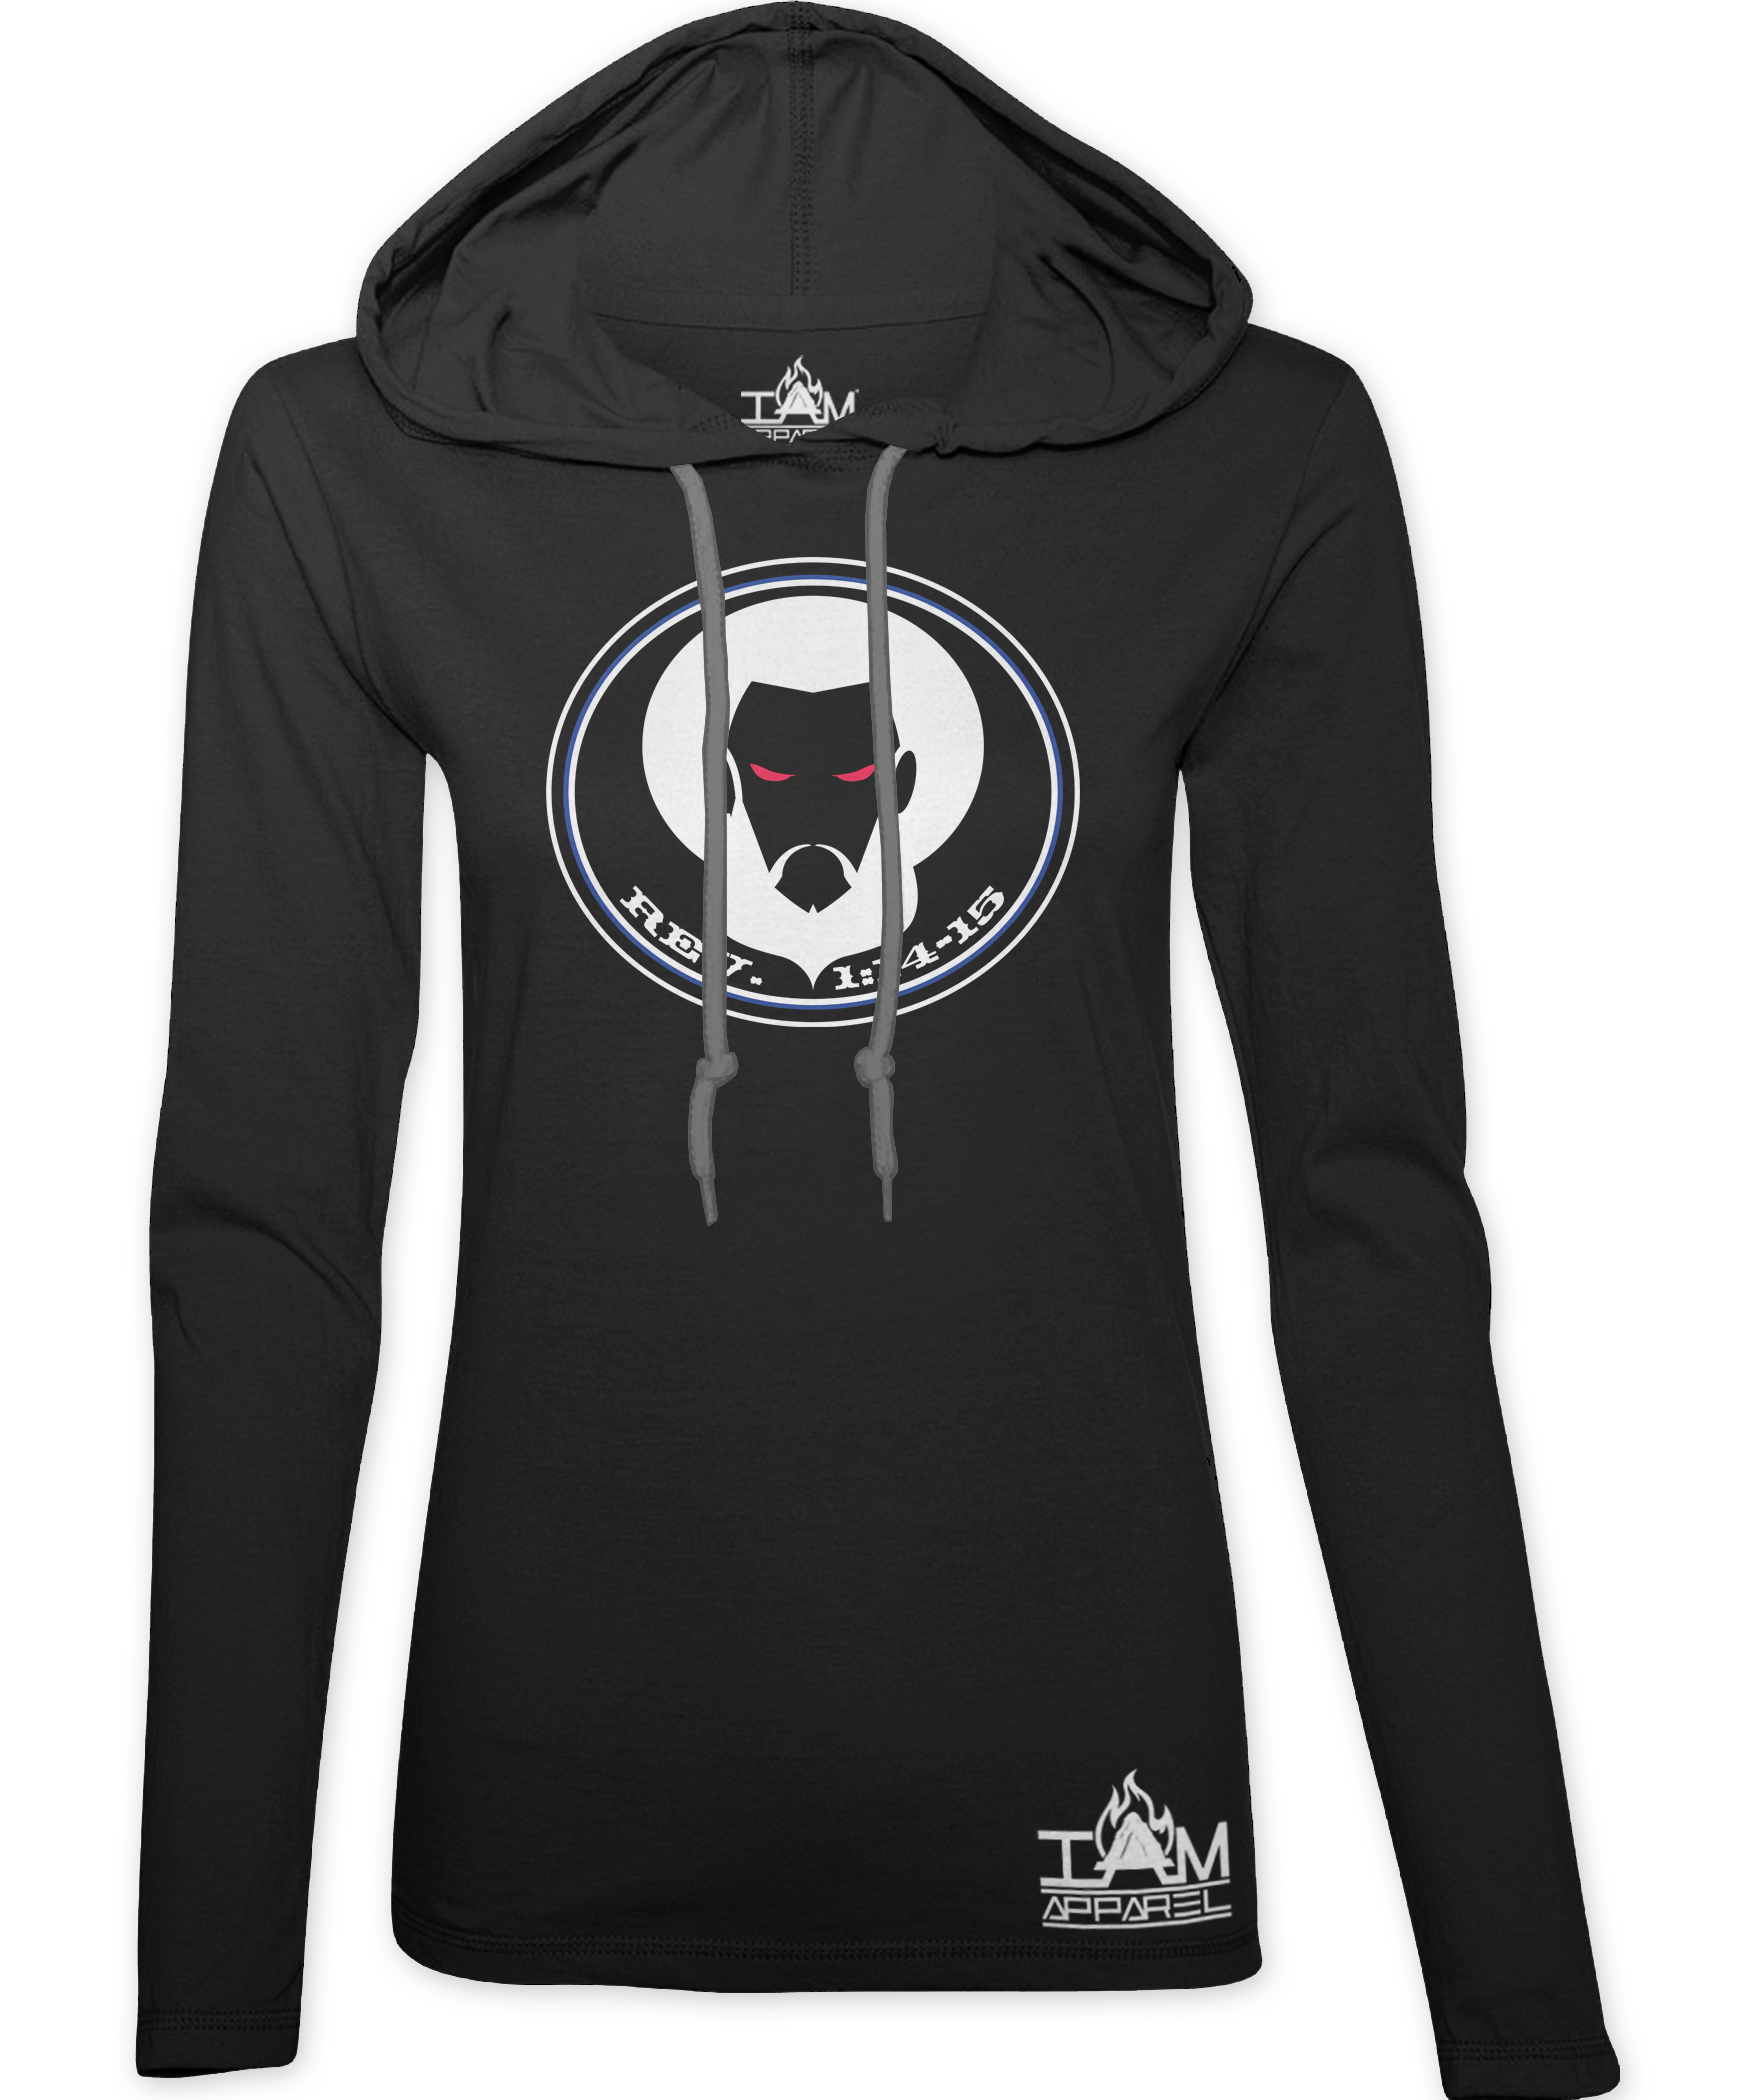 Women's Hoodie with Image of Christ 00045